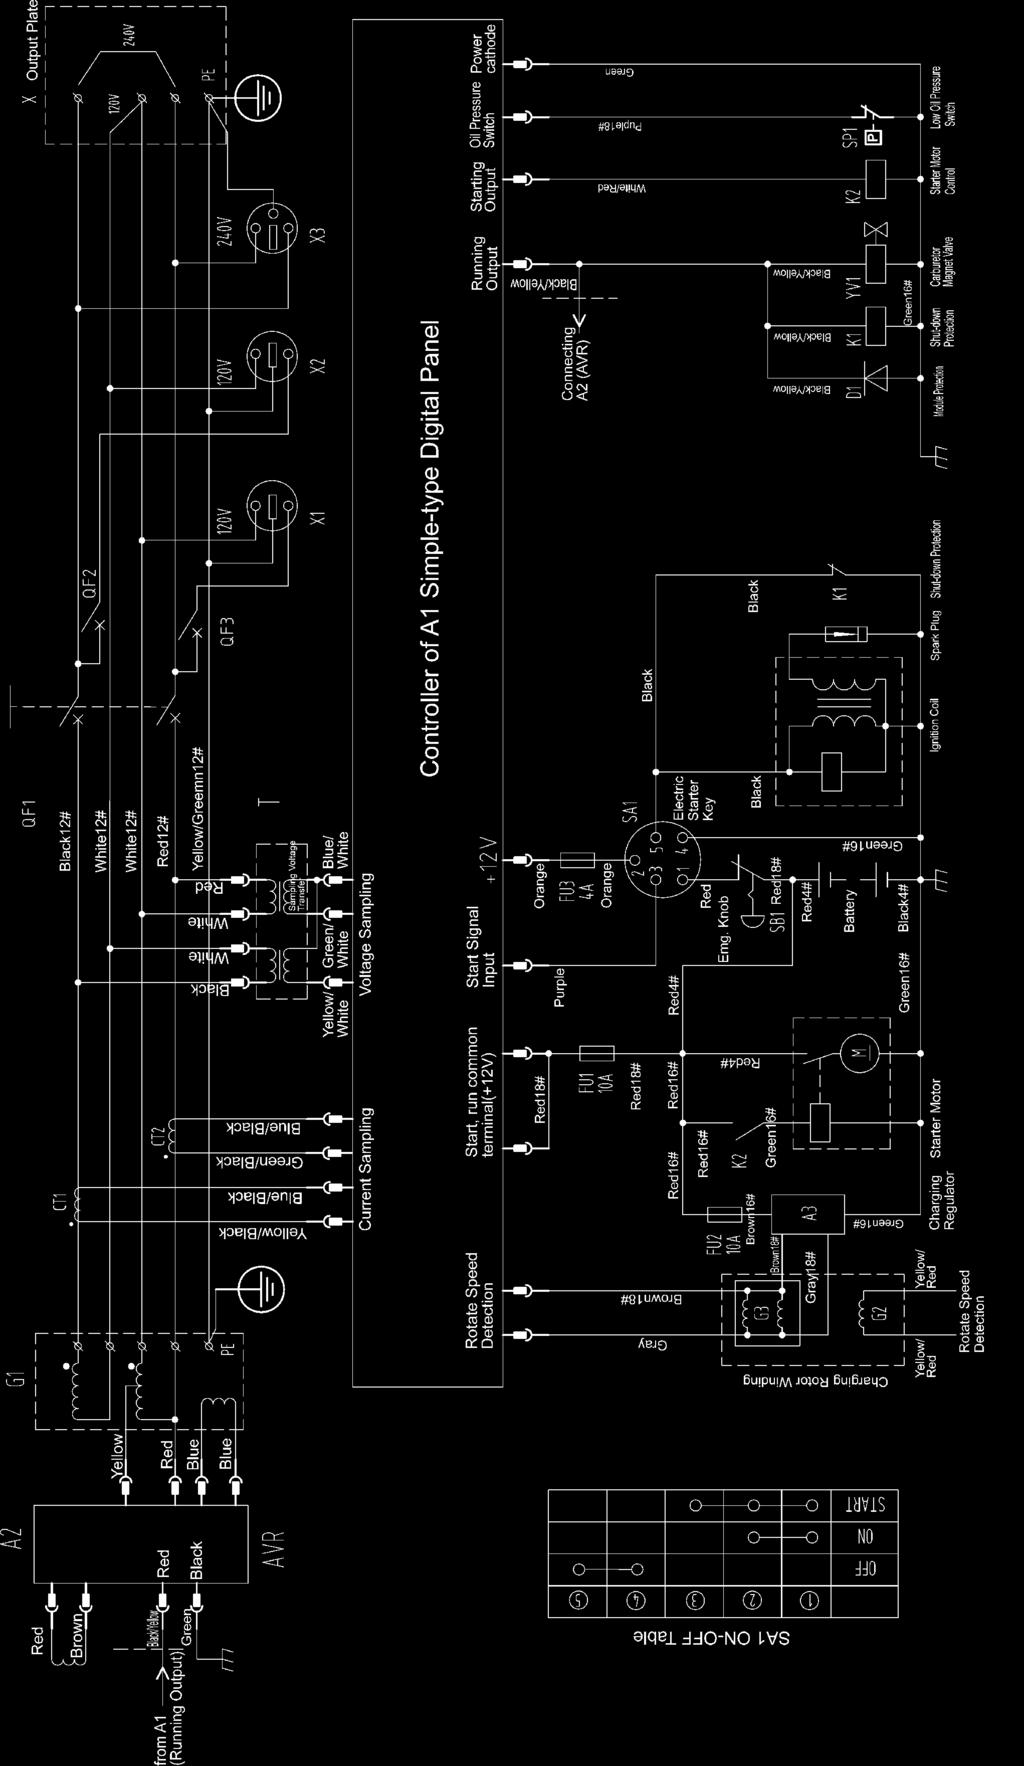 6. KGE1E3 ELECTRICAL WIRING DIAGRAM (Without Electric Governing) (DOUBLE VOLTAGE OUTPUT).